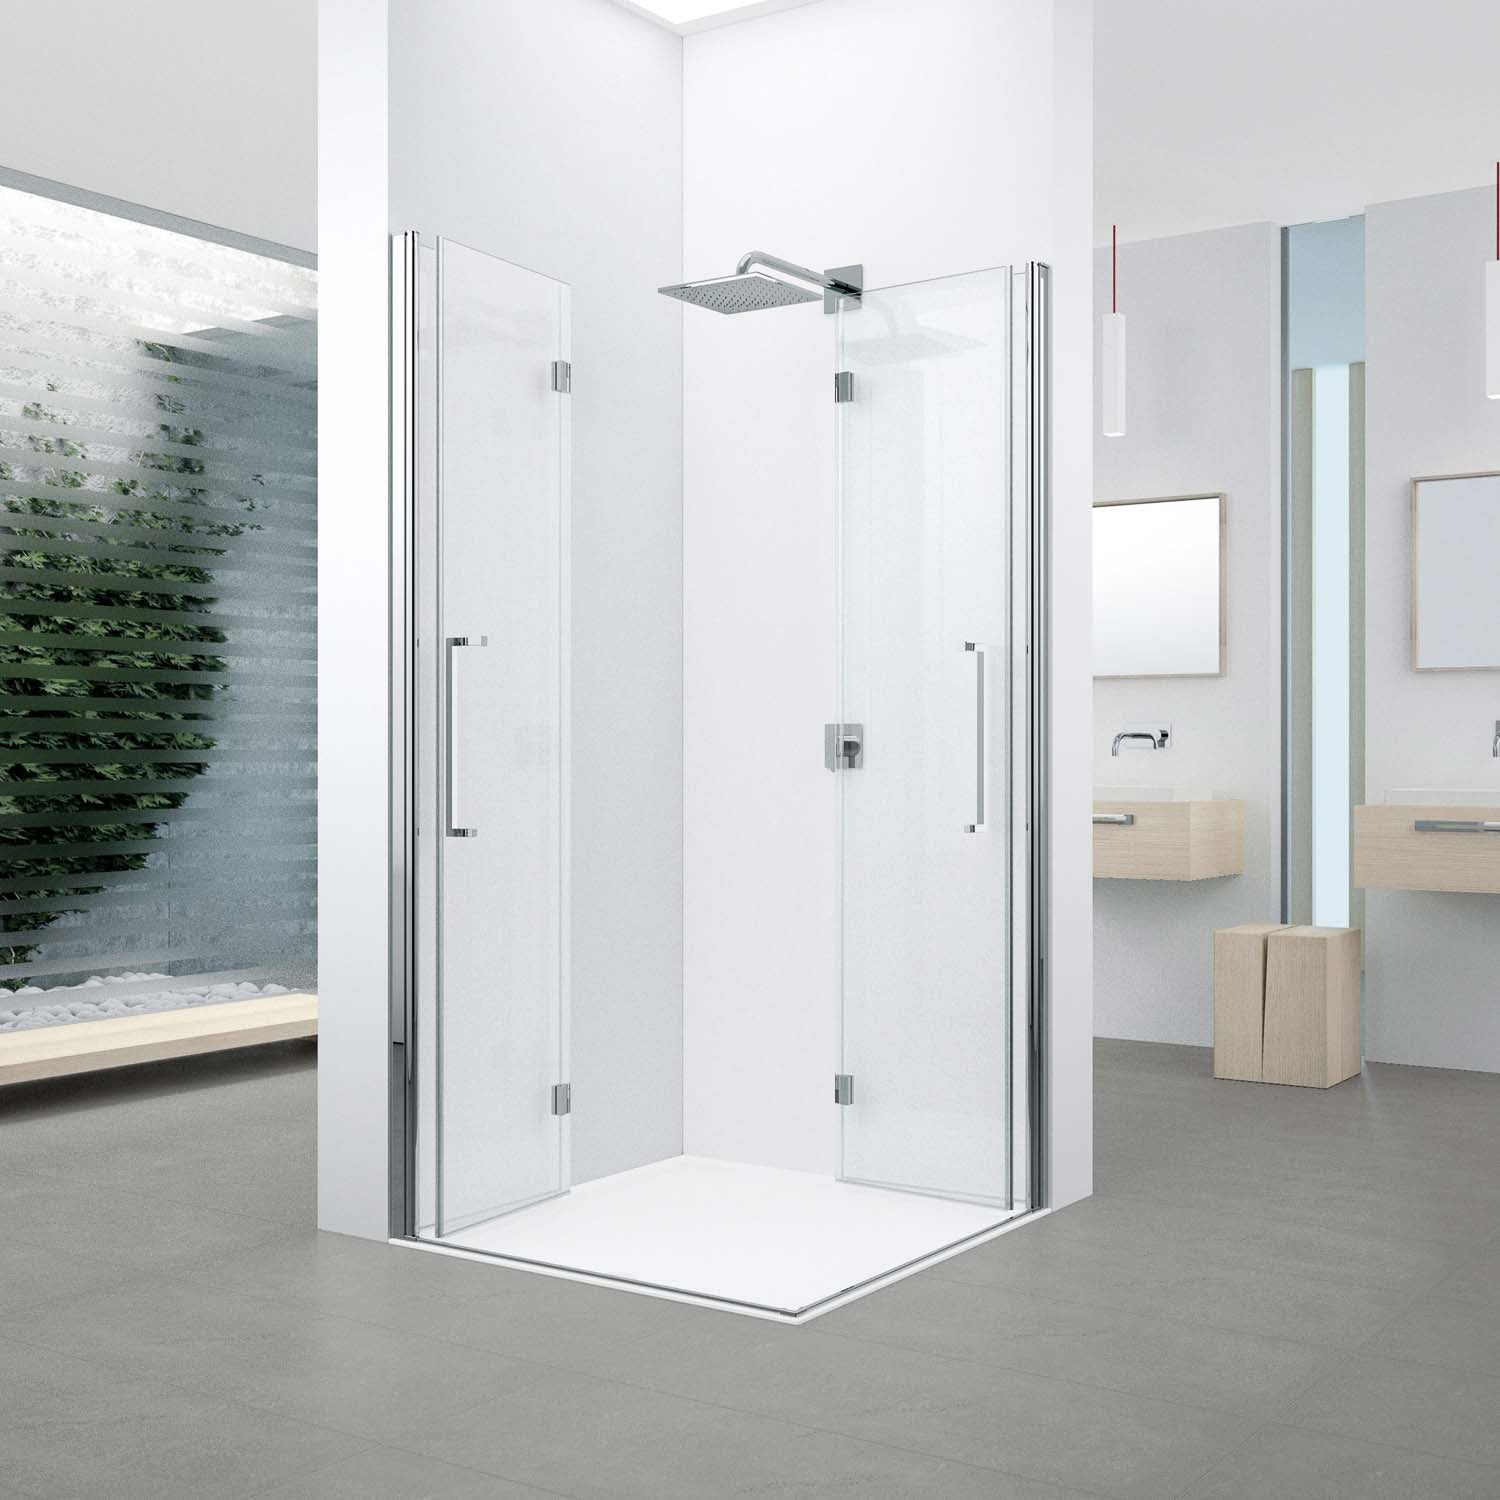 990-1010mm Bliss Bi-folding Screen Frosted Glass with a chrome finish lifestyle image